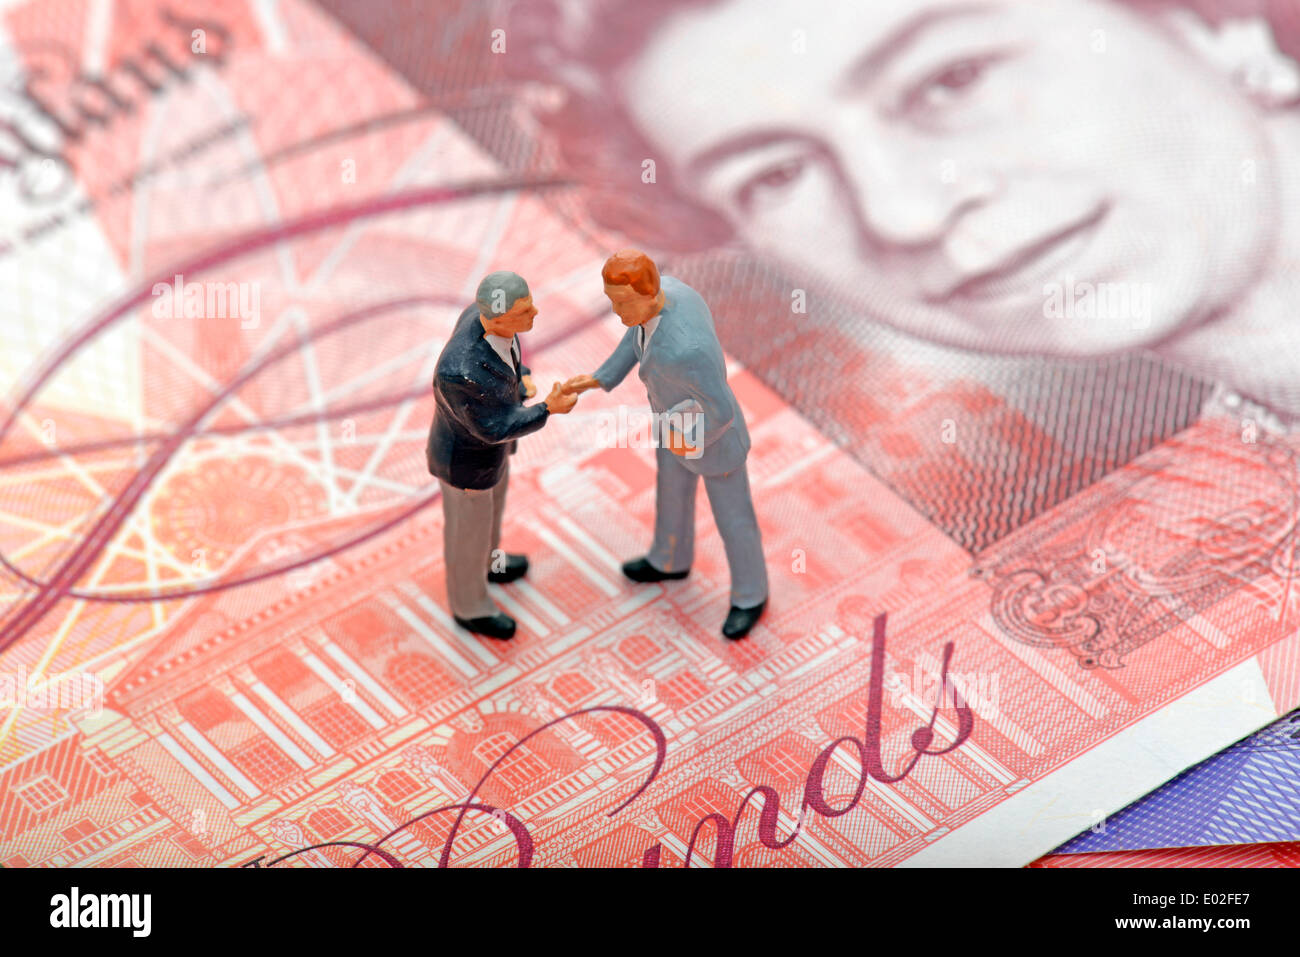 Managers Shaking Hands Miniature Figurines Top British Pound Sterling Banknote